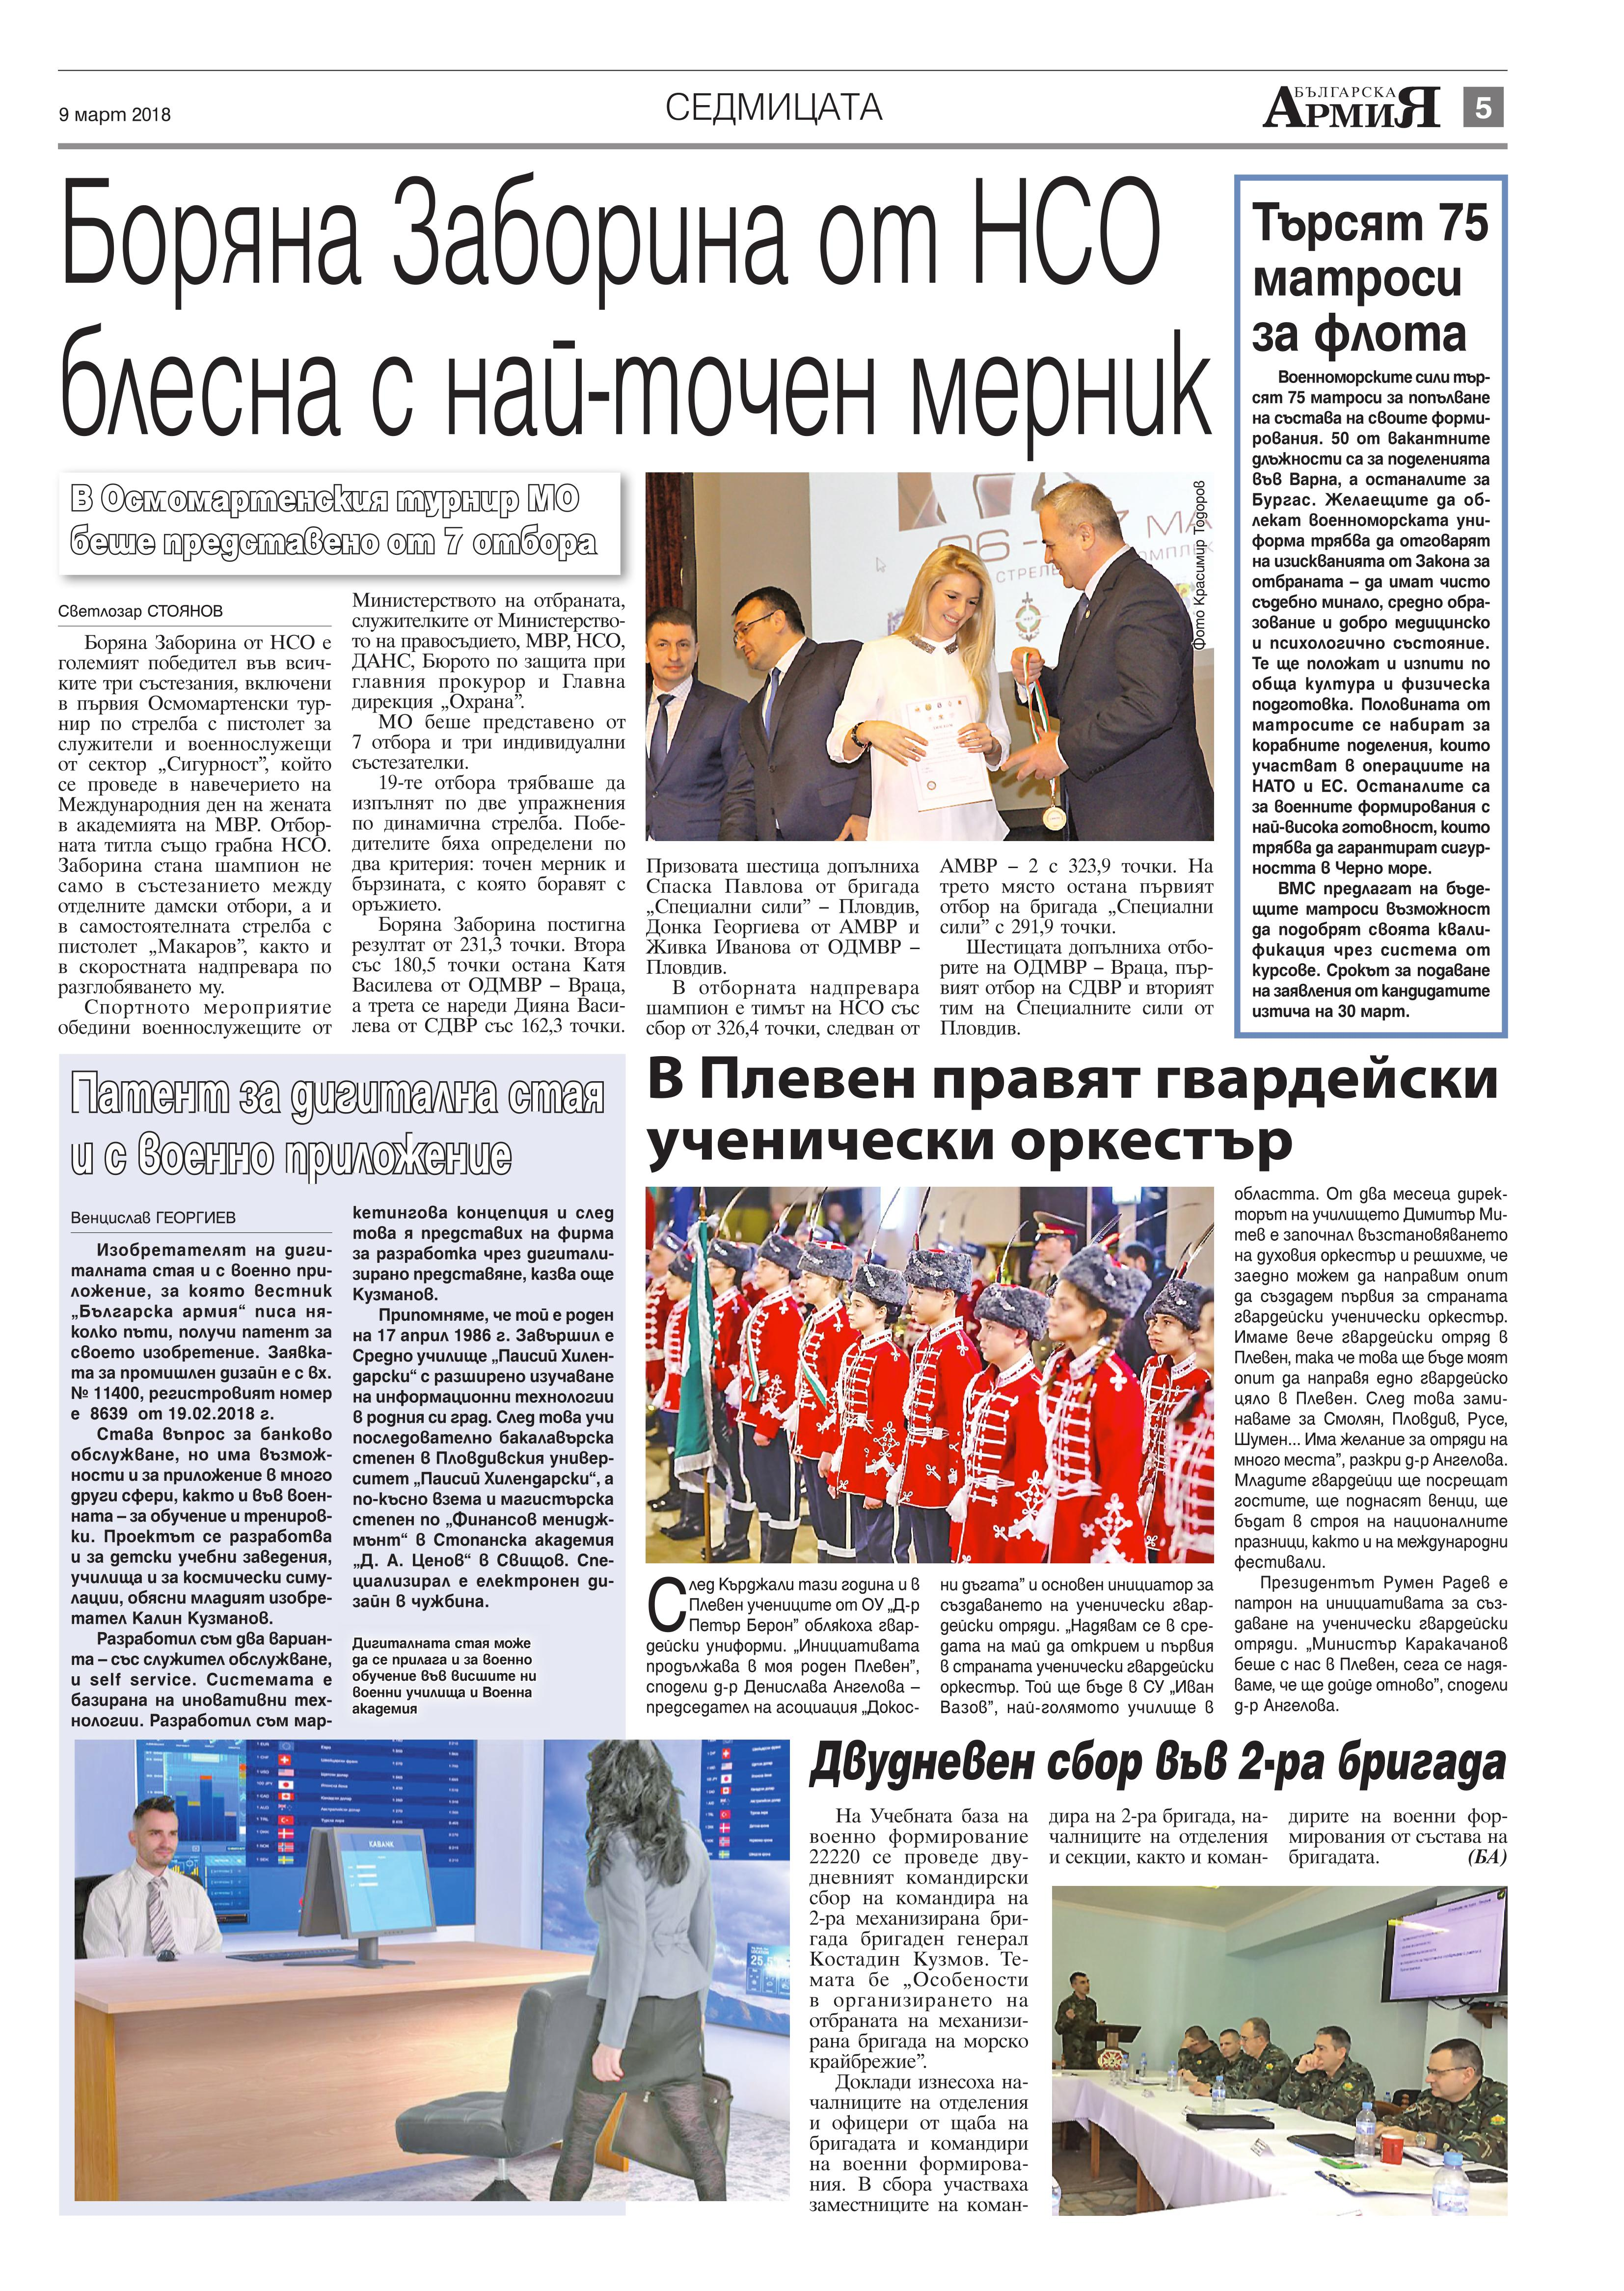 https://armymedia.bg/wp-content/uploads/2015/06/05.page1_-40.jpg